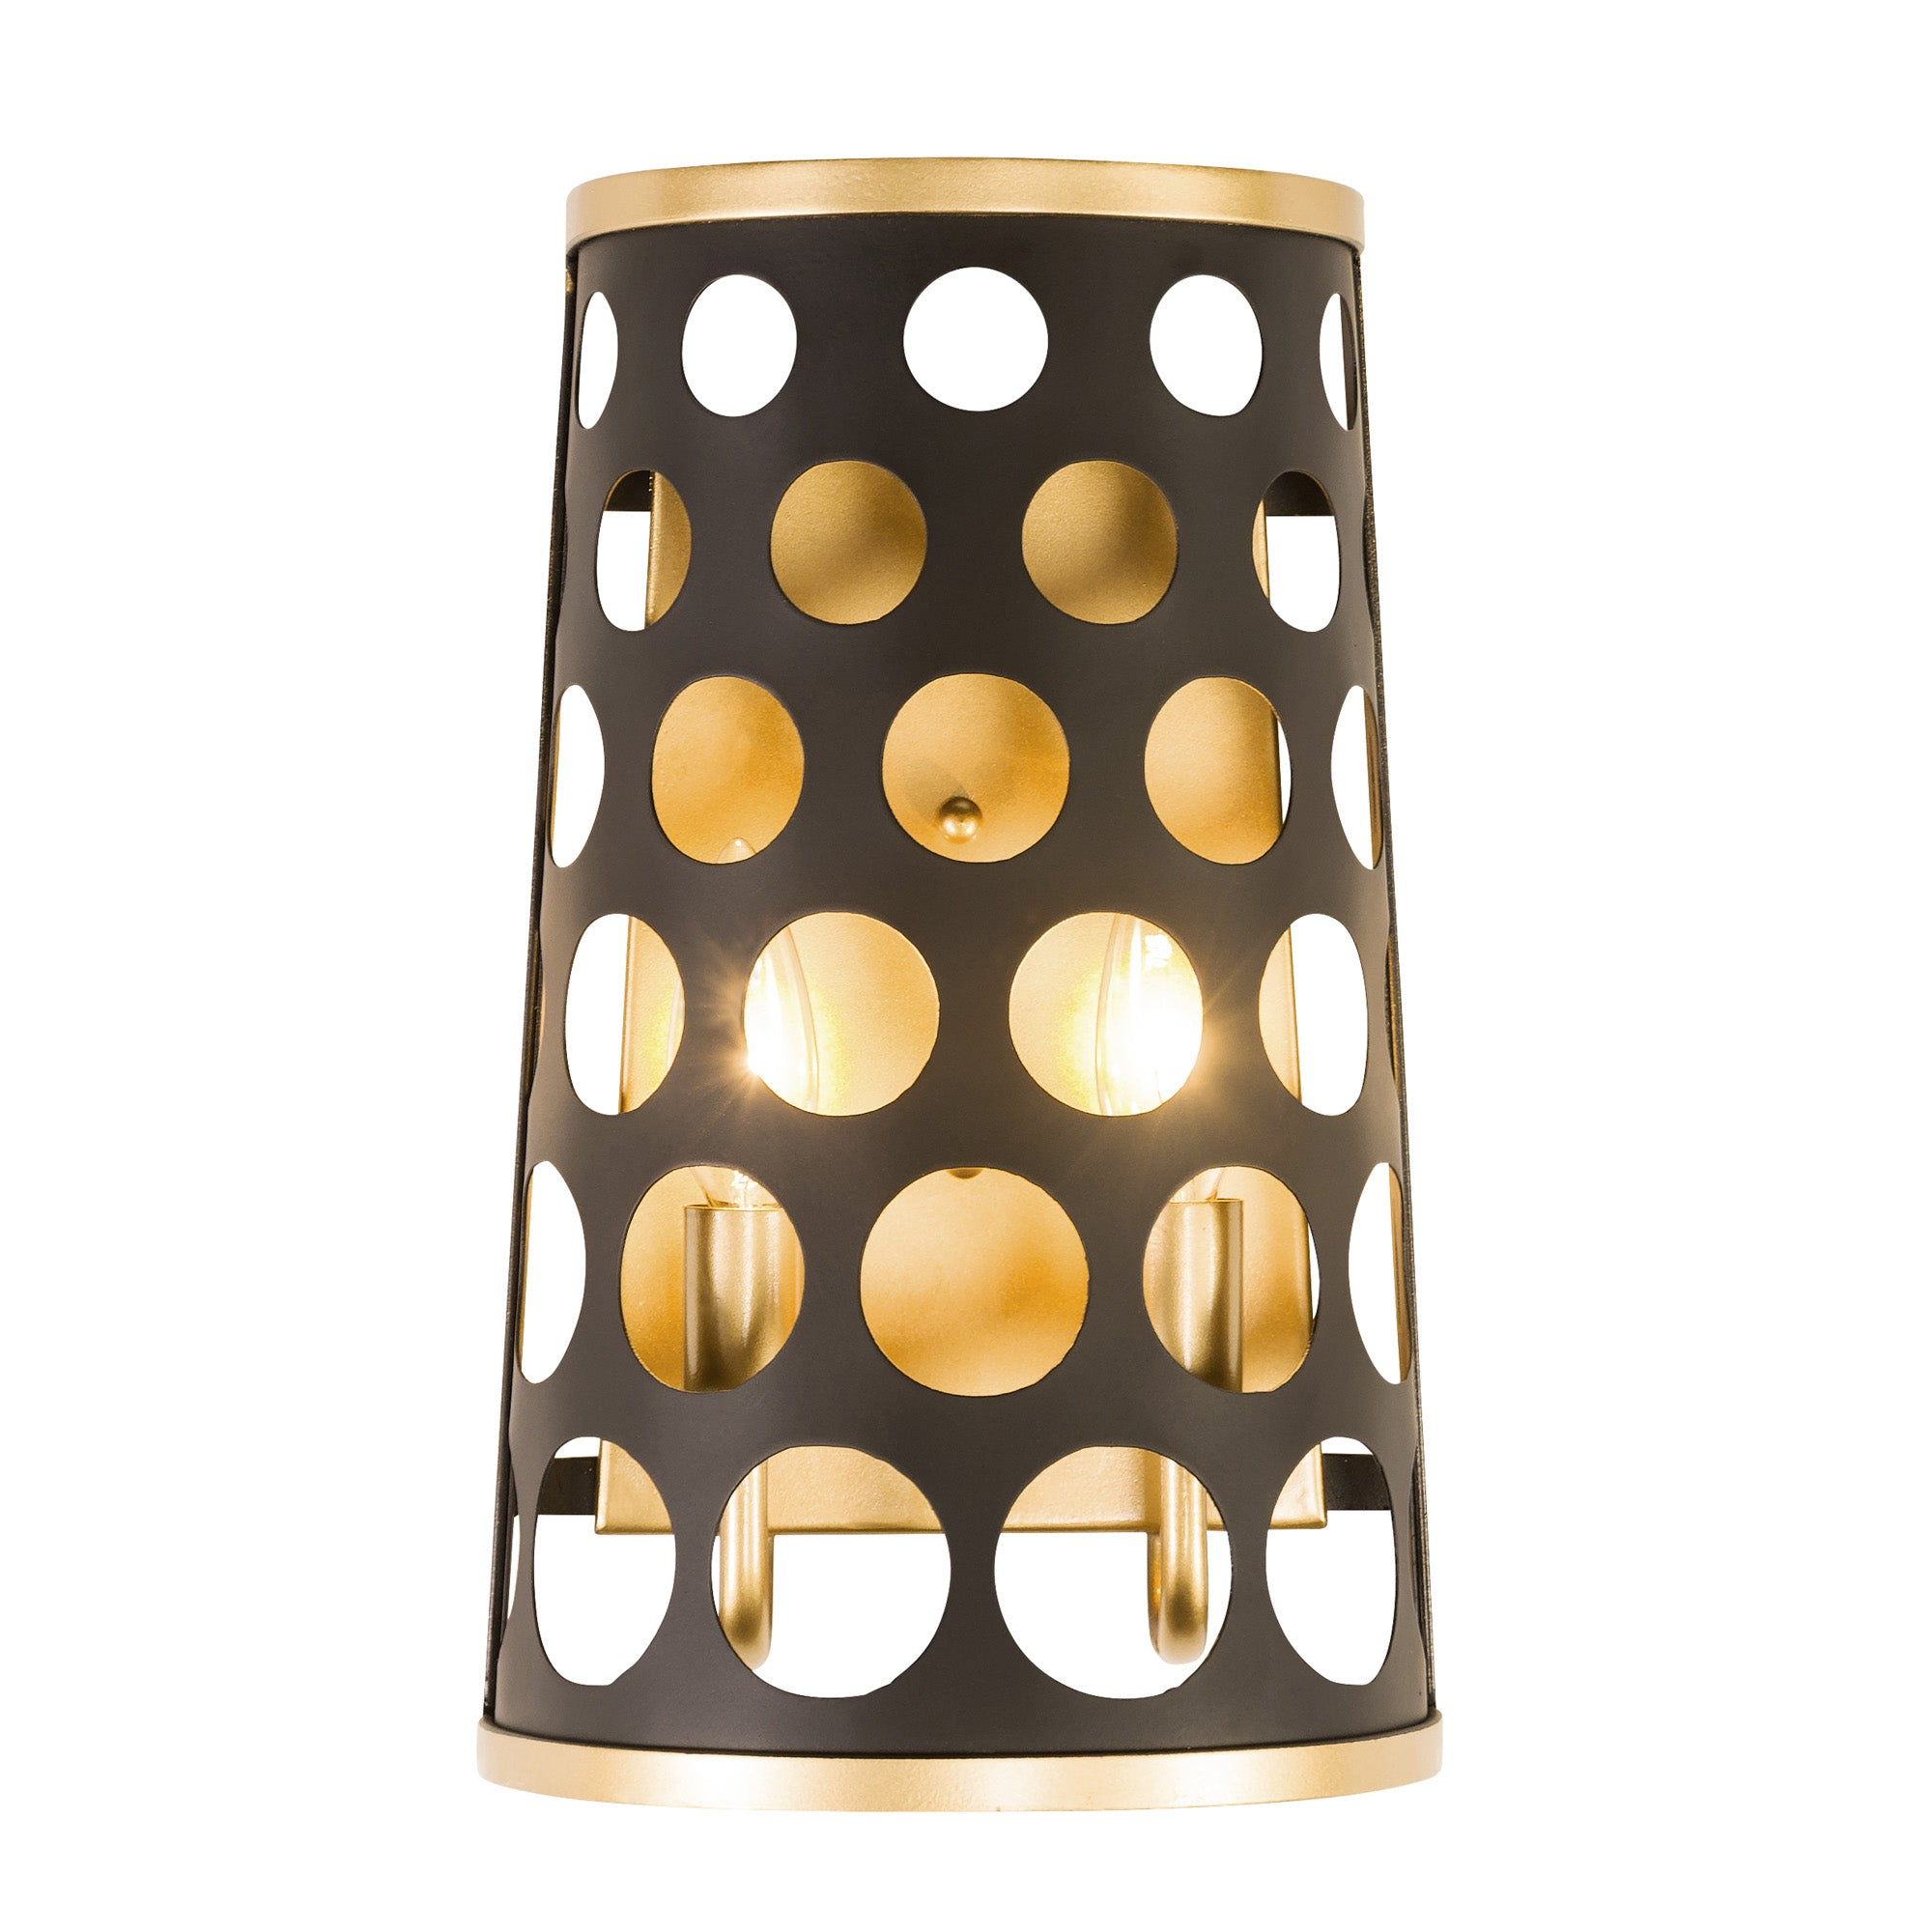 Bailey 2-Lt Wall Sconce - Matte Black/French Gold